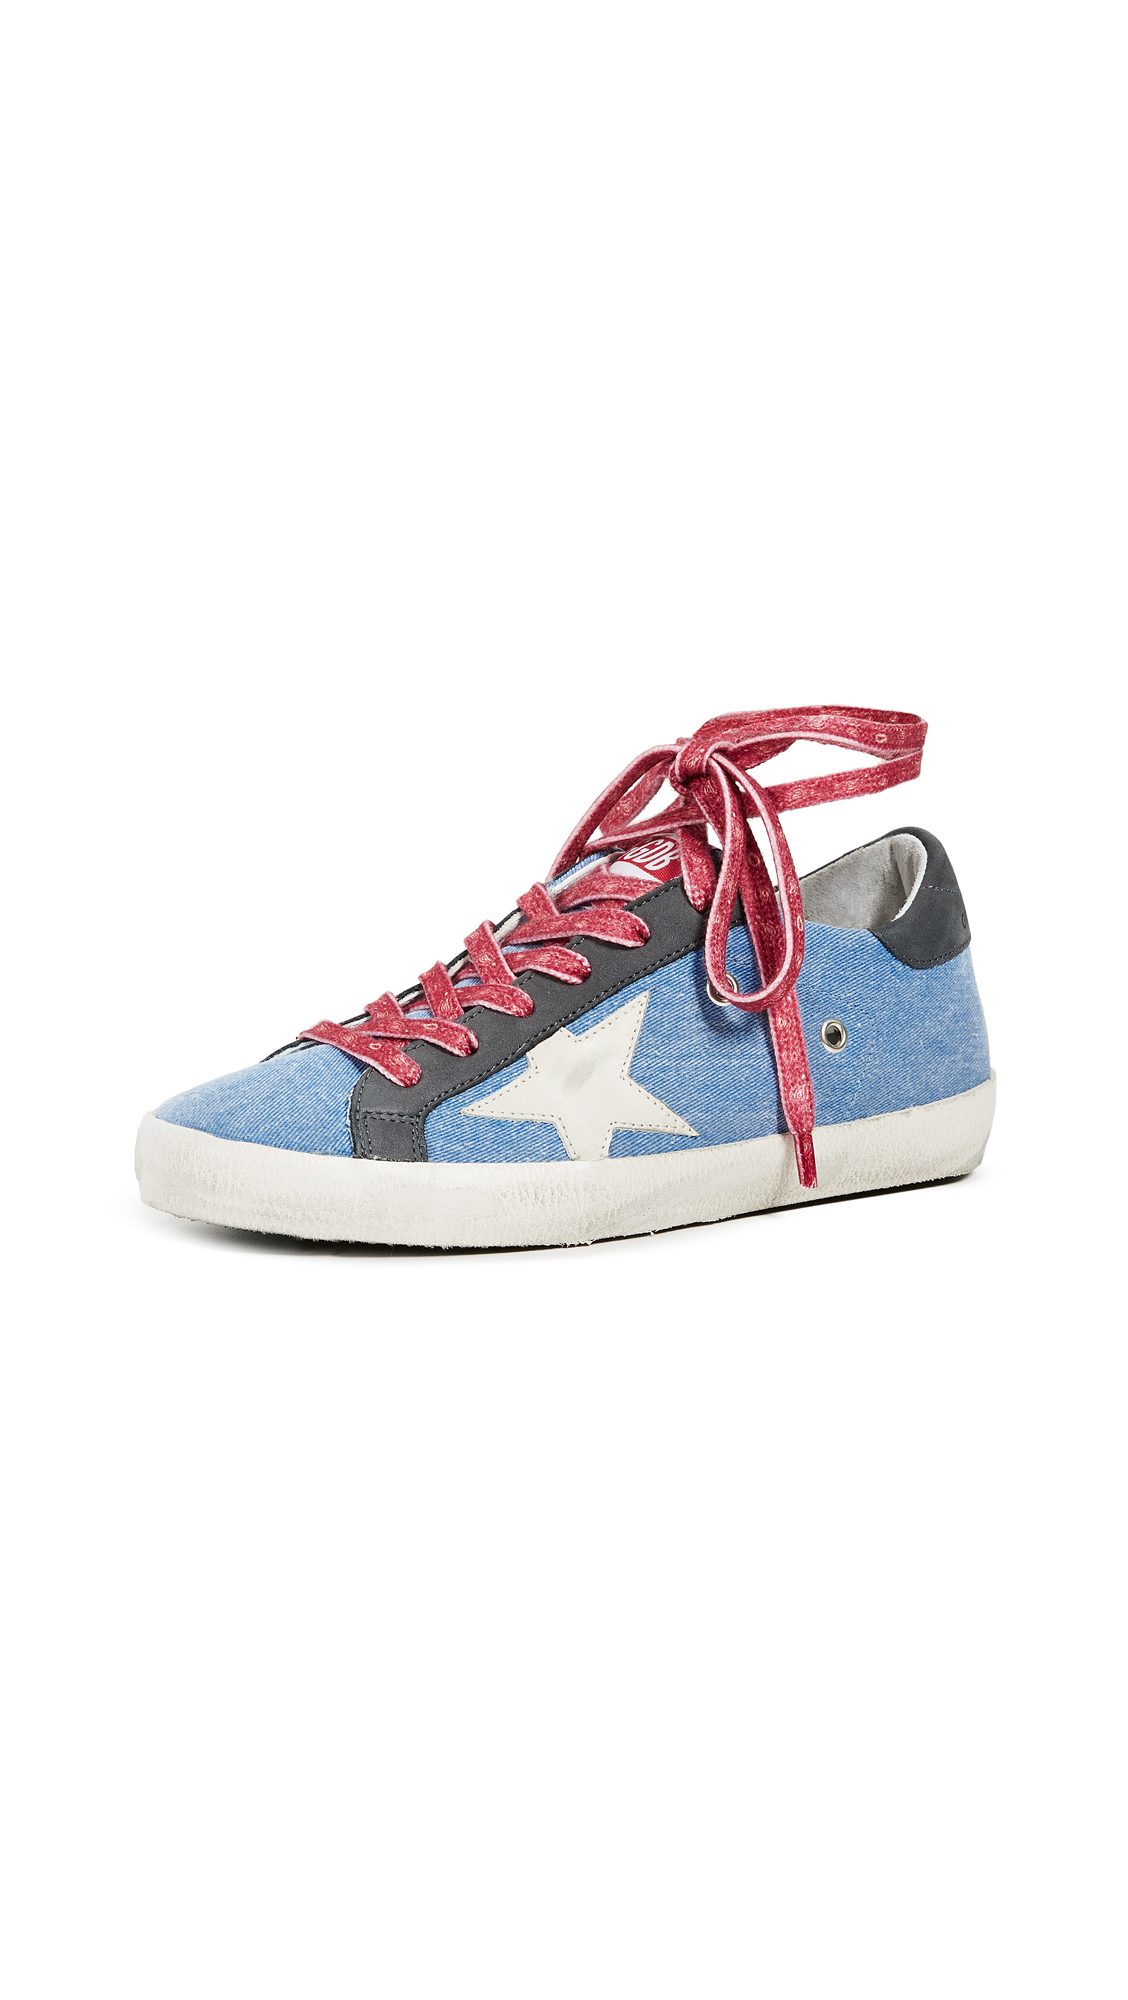 Golden Goose Superstar Sneakers - Chambray